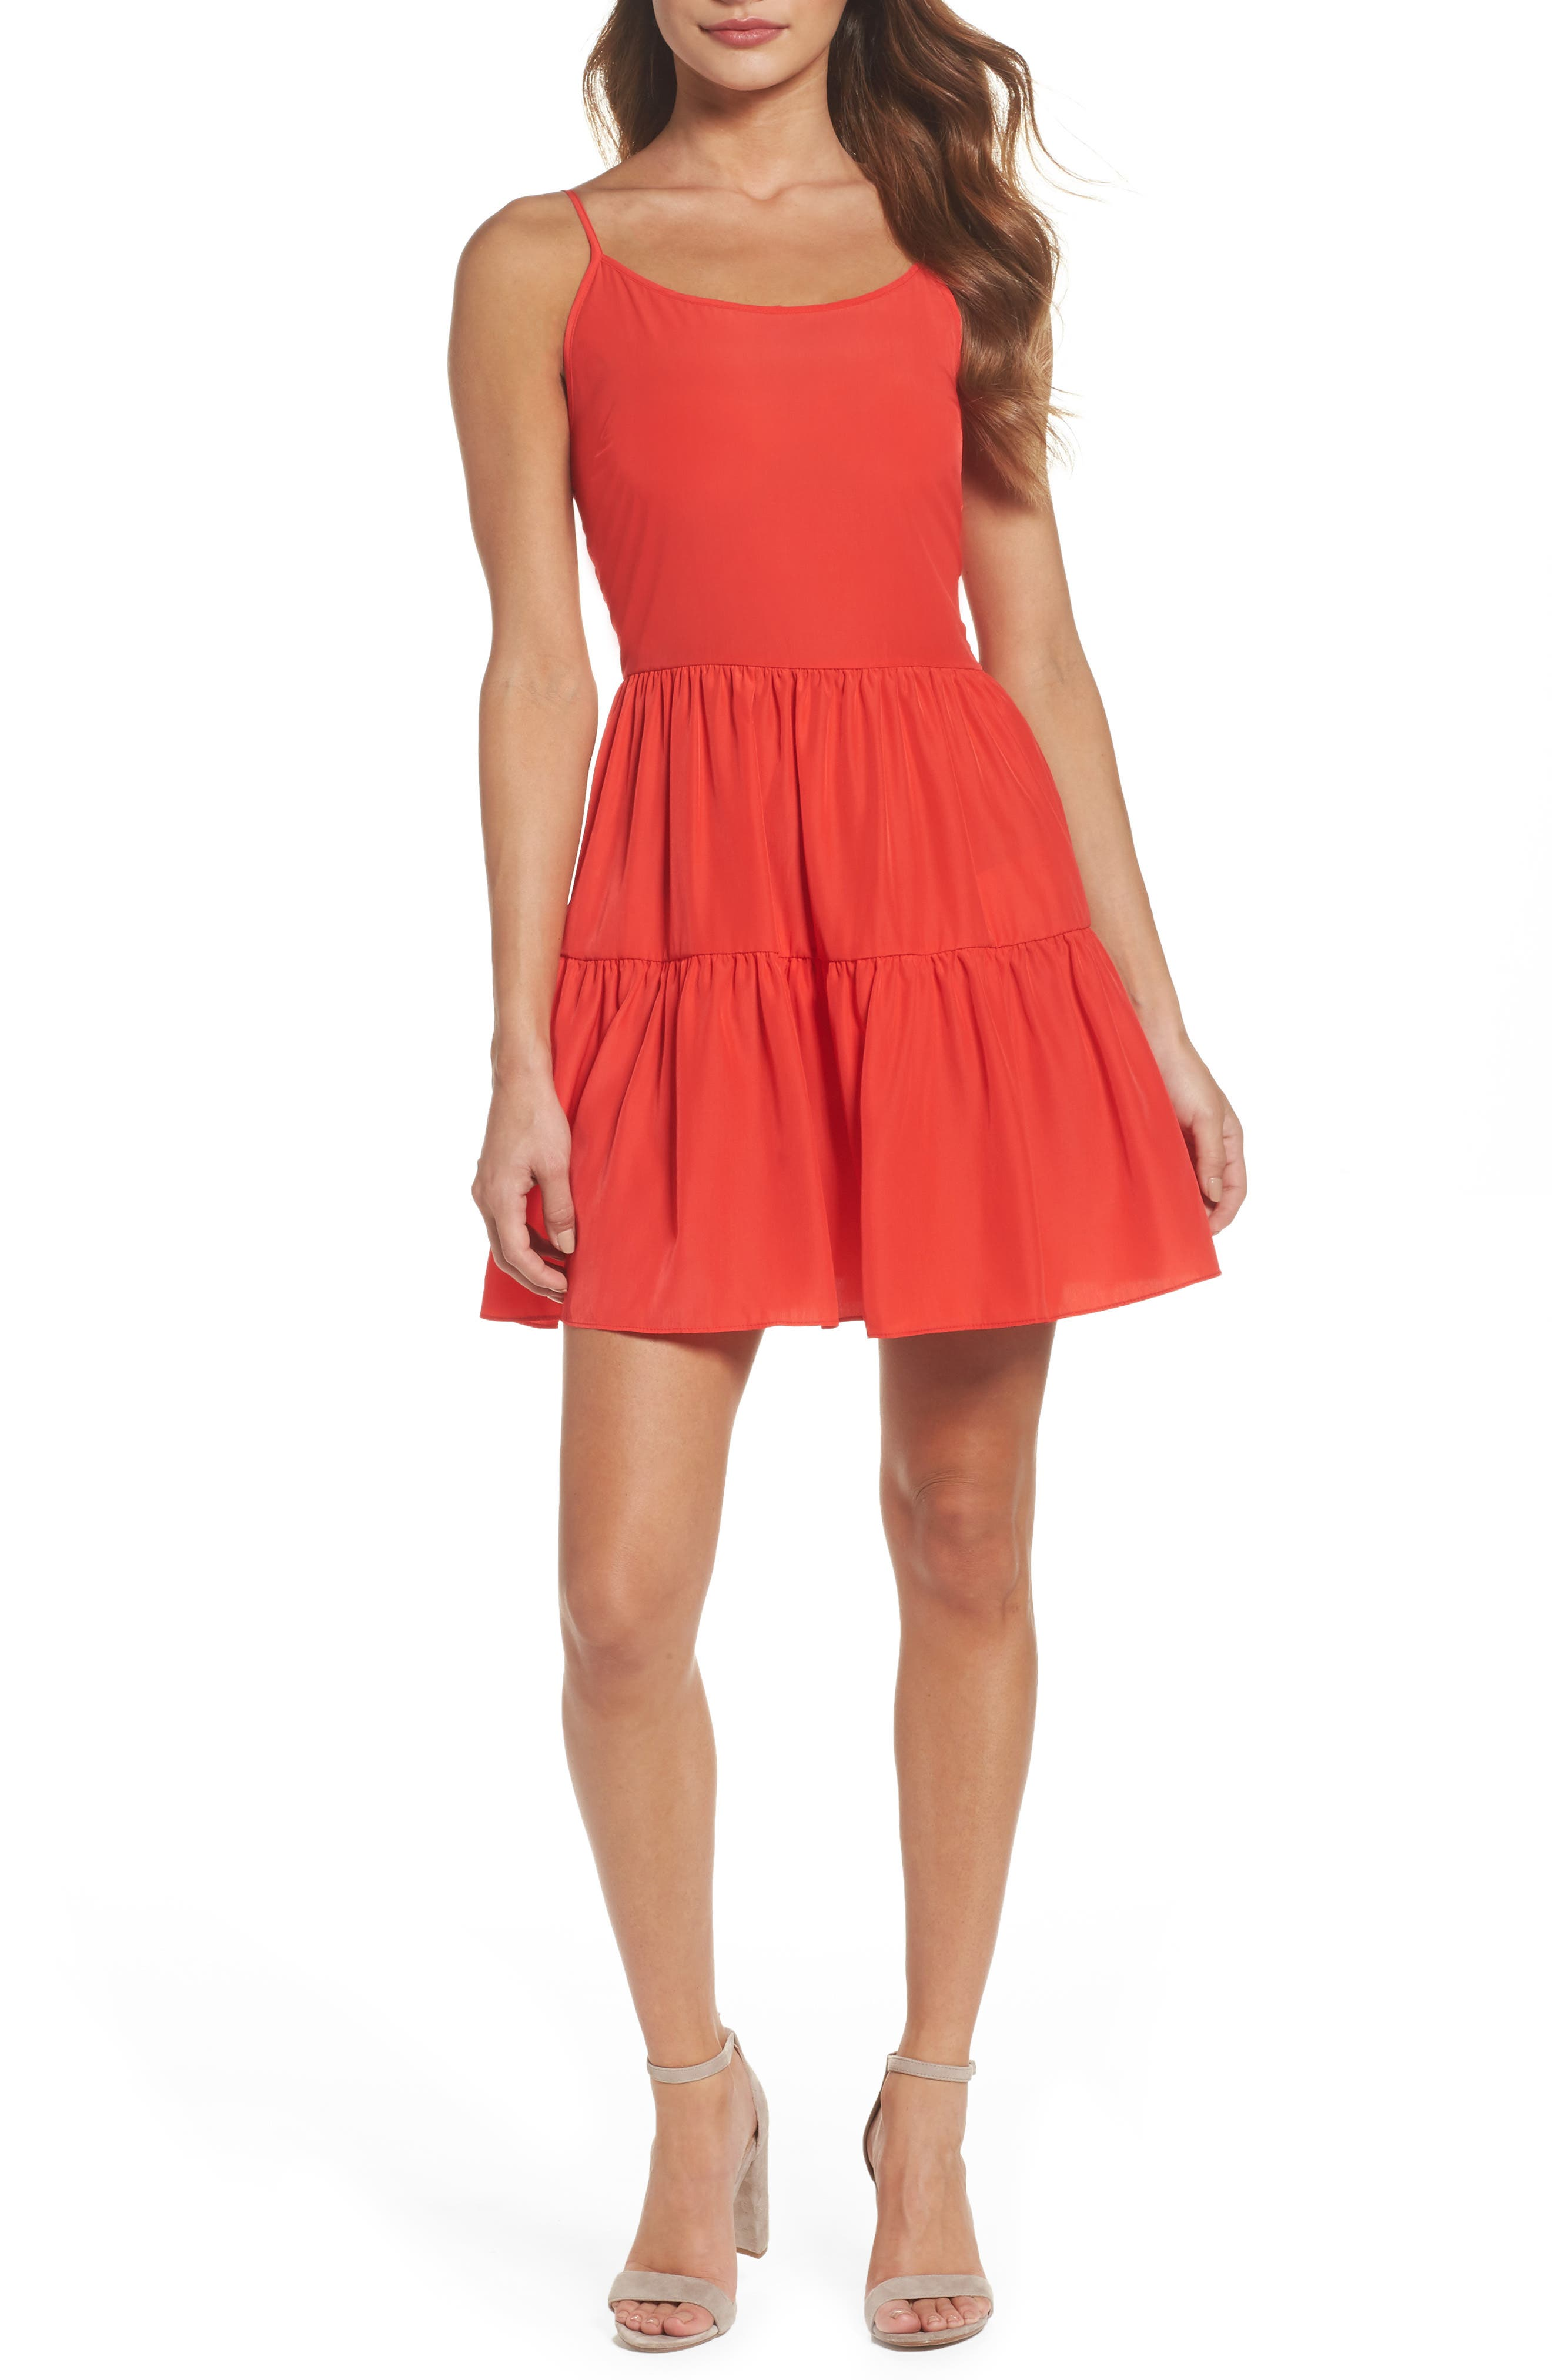 A by Amanda Fit & Flare Dress